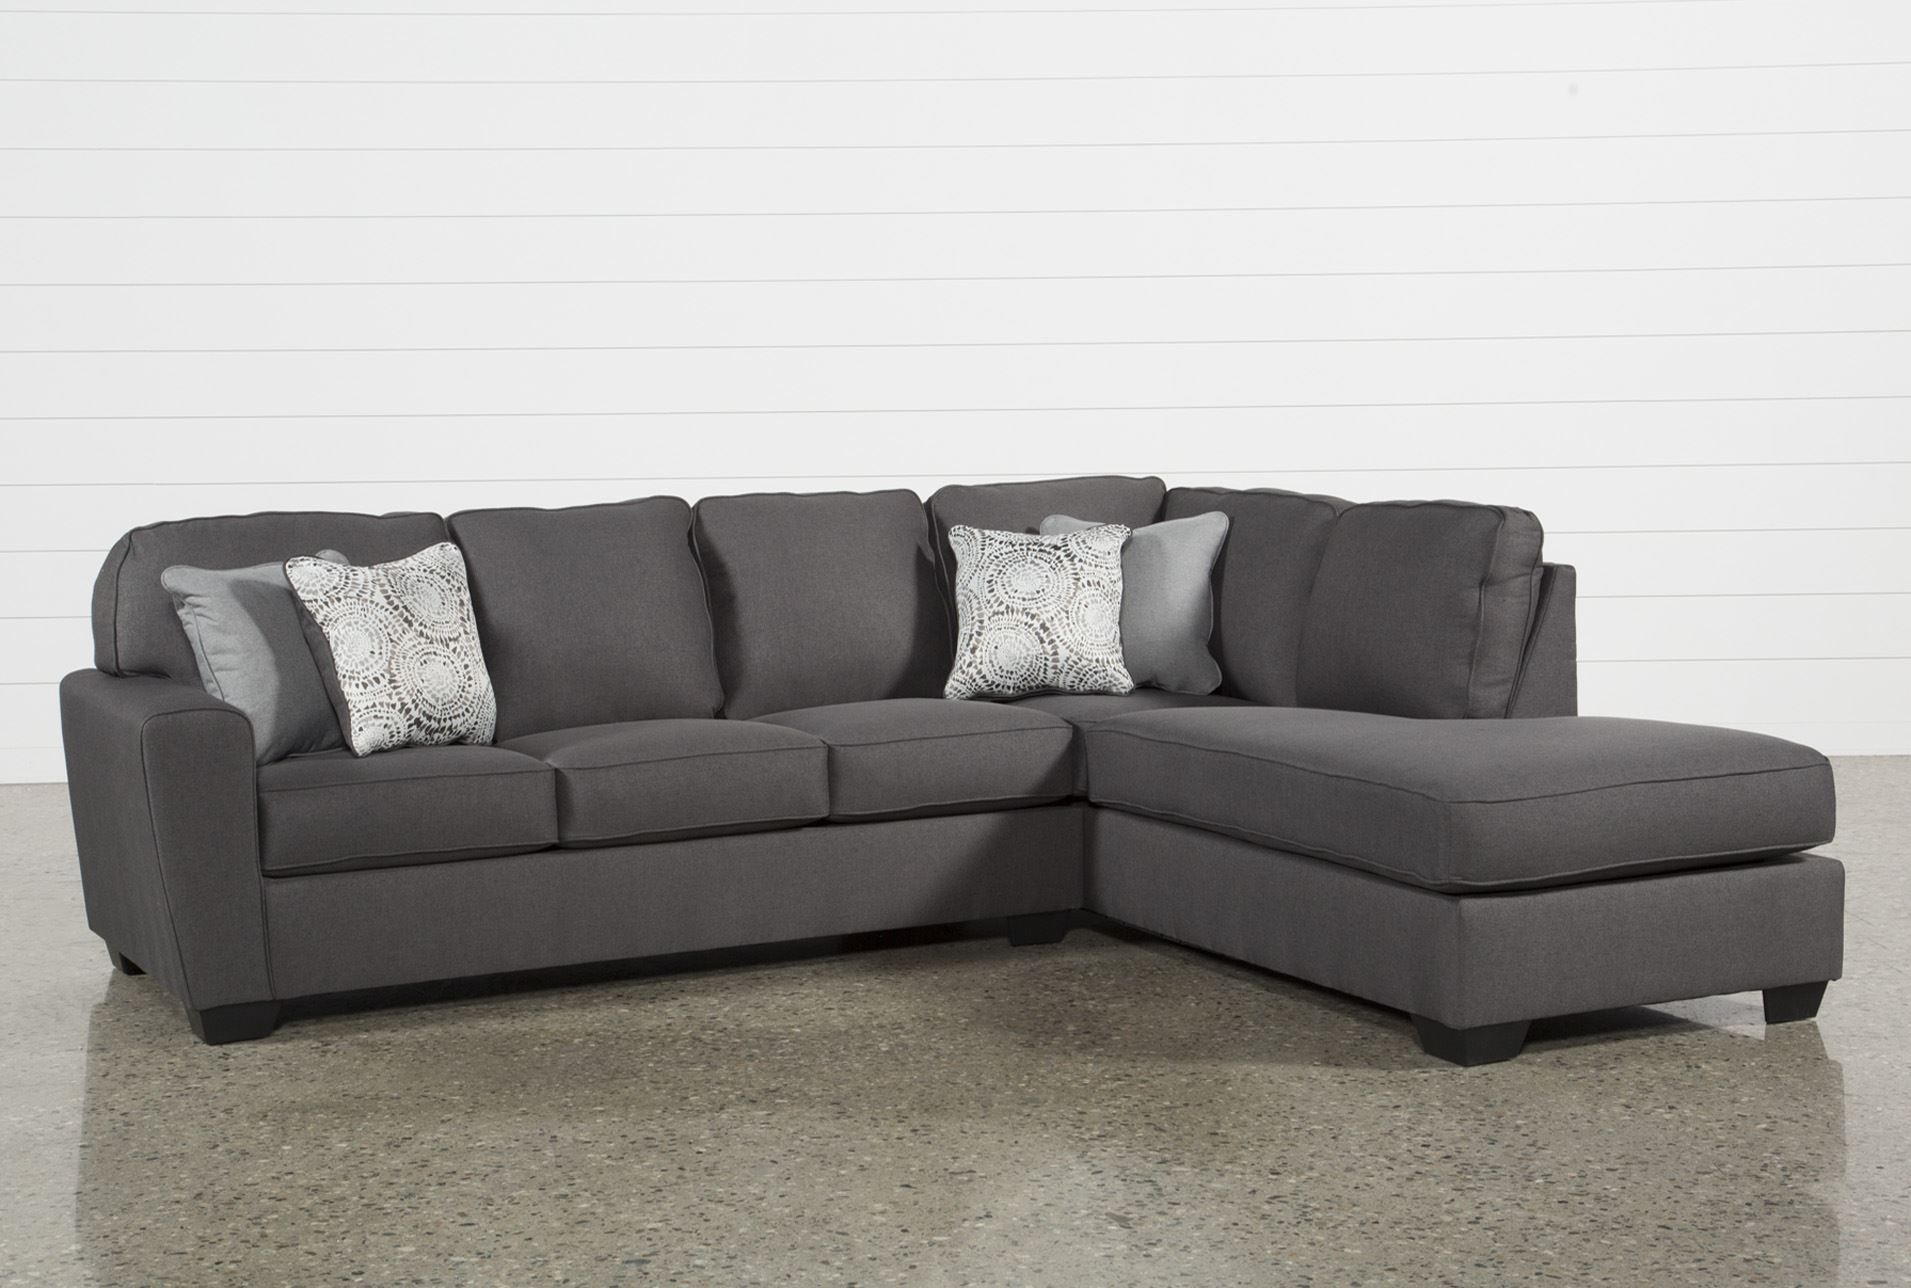 Mcdade Graphite 2 Piece Sectional W/raf Chaise | Products Within Mcculla Sofa Sectionals With Reversible Chaise (Image 18 of 25)